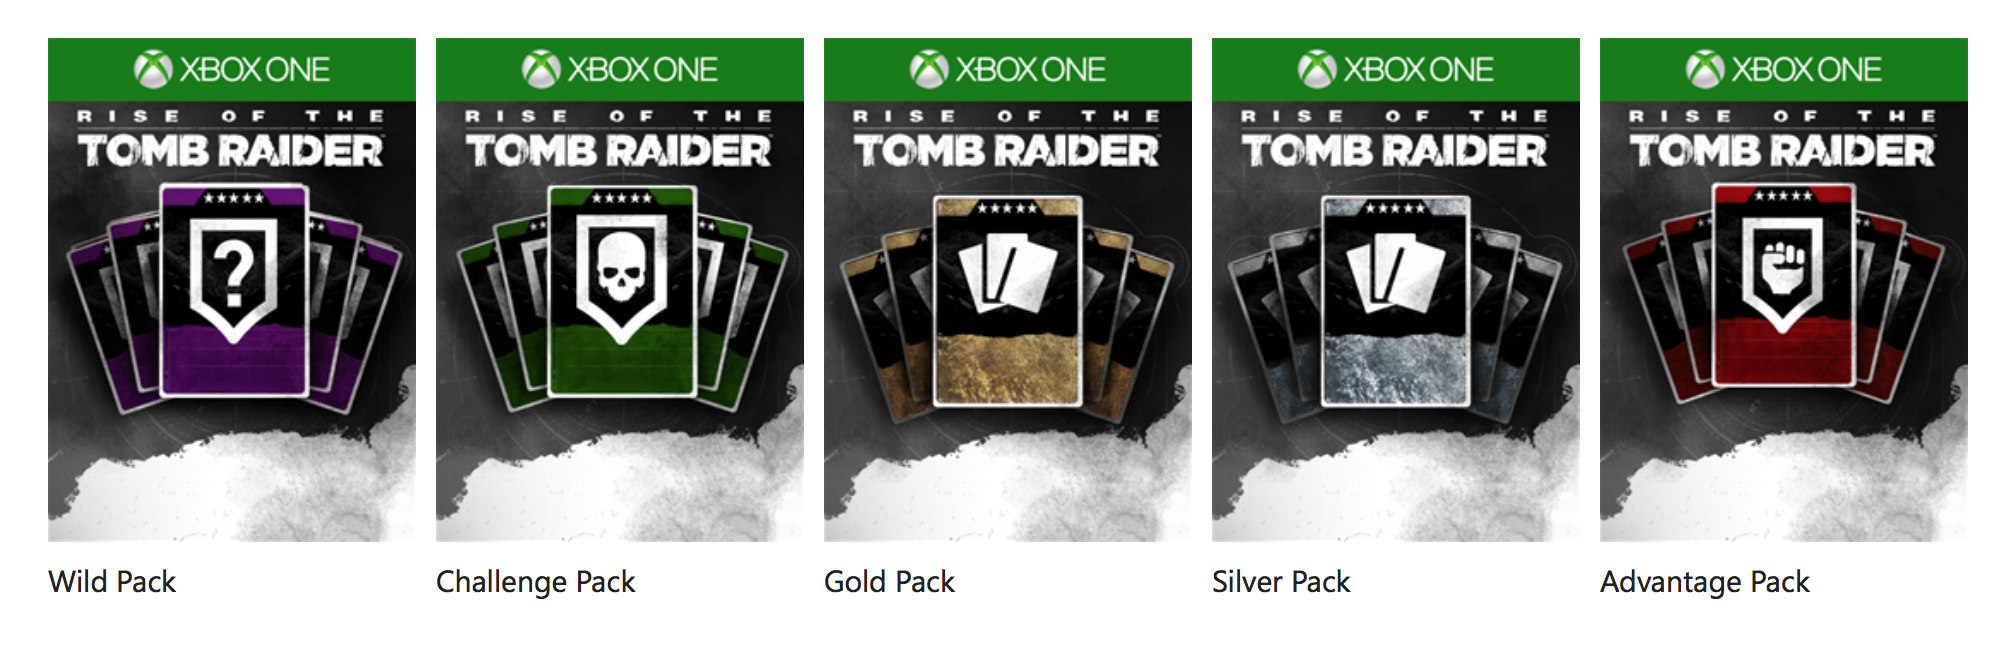 UNILAD Screen Shot 2015 10 06 at 11.24.46 PM6 Rise Of The Tomb Raider Will Feature Card Based Microtransactions